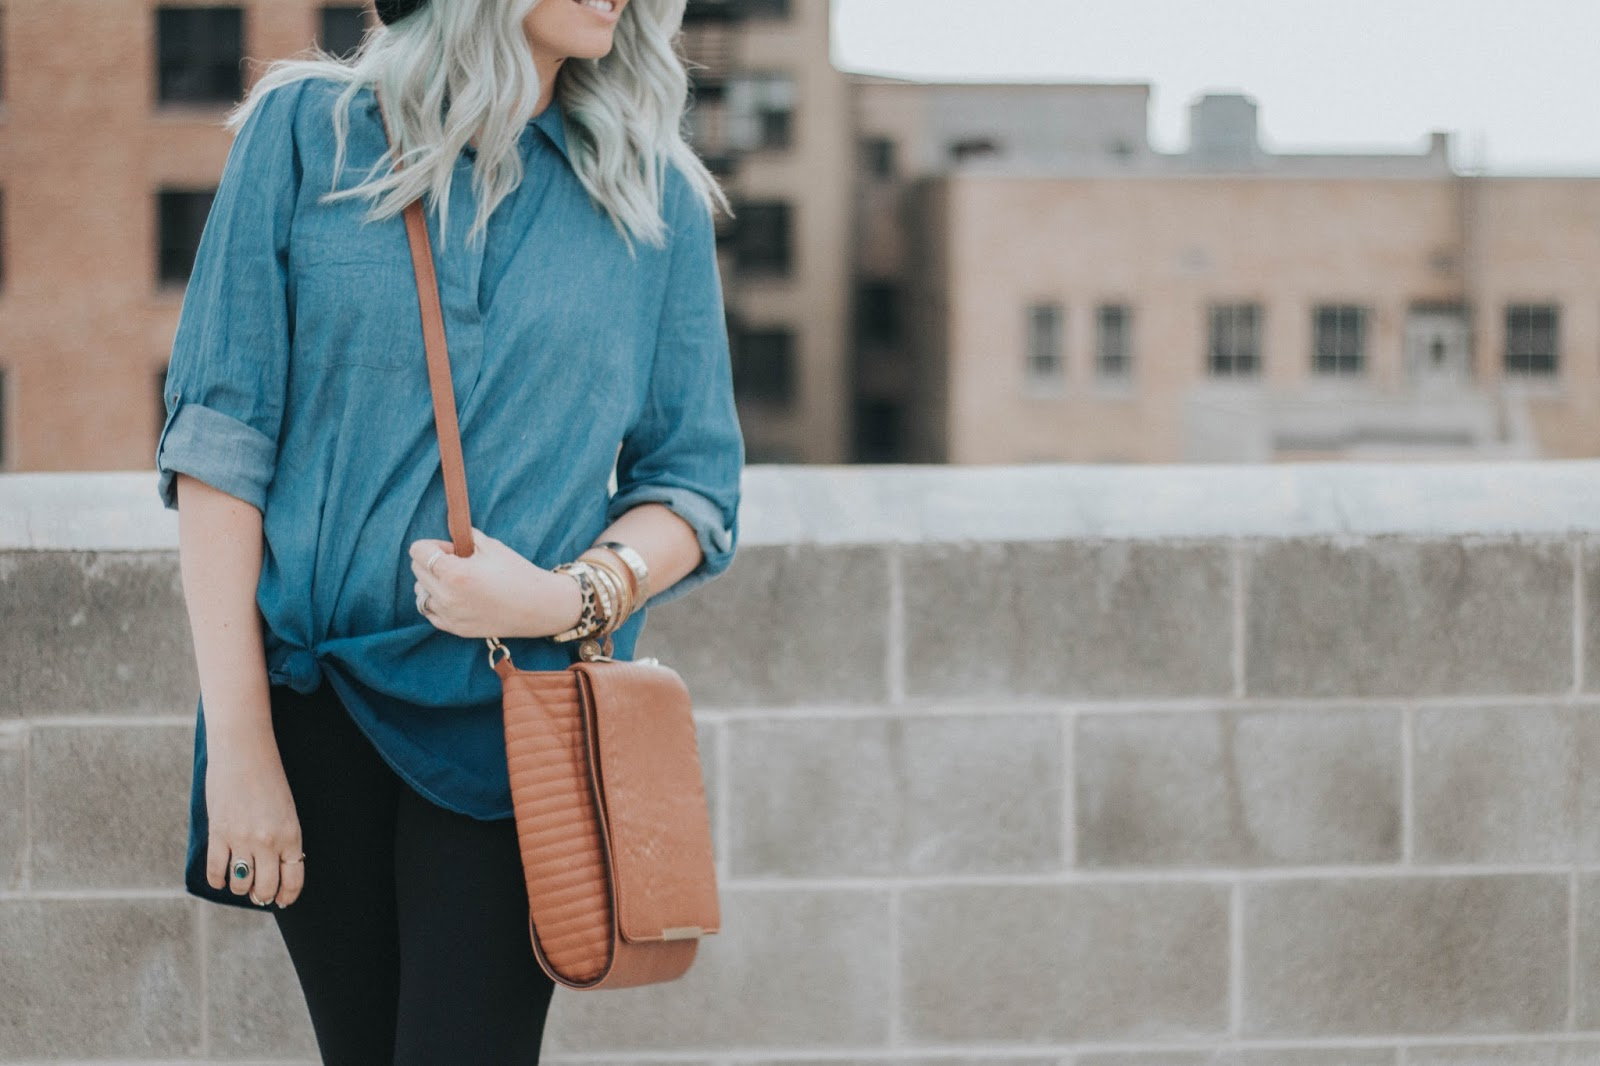 Cute Top, Modest Top, Utah Fashion Blogger